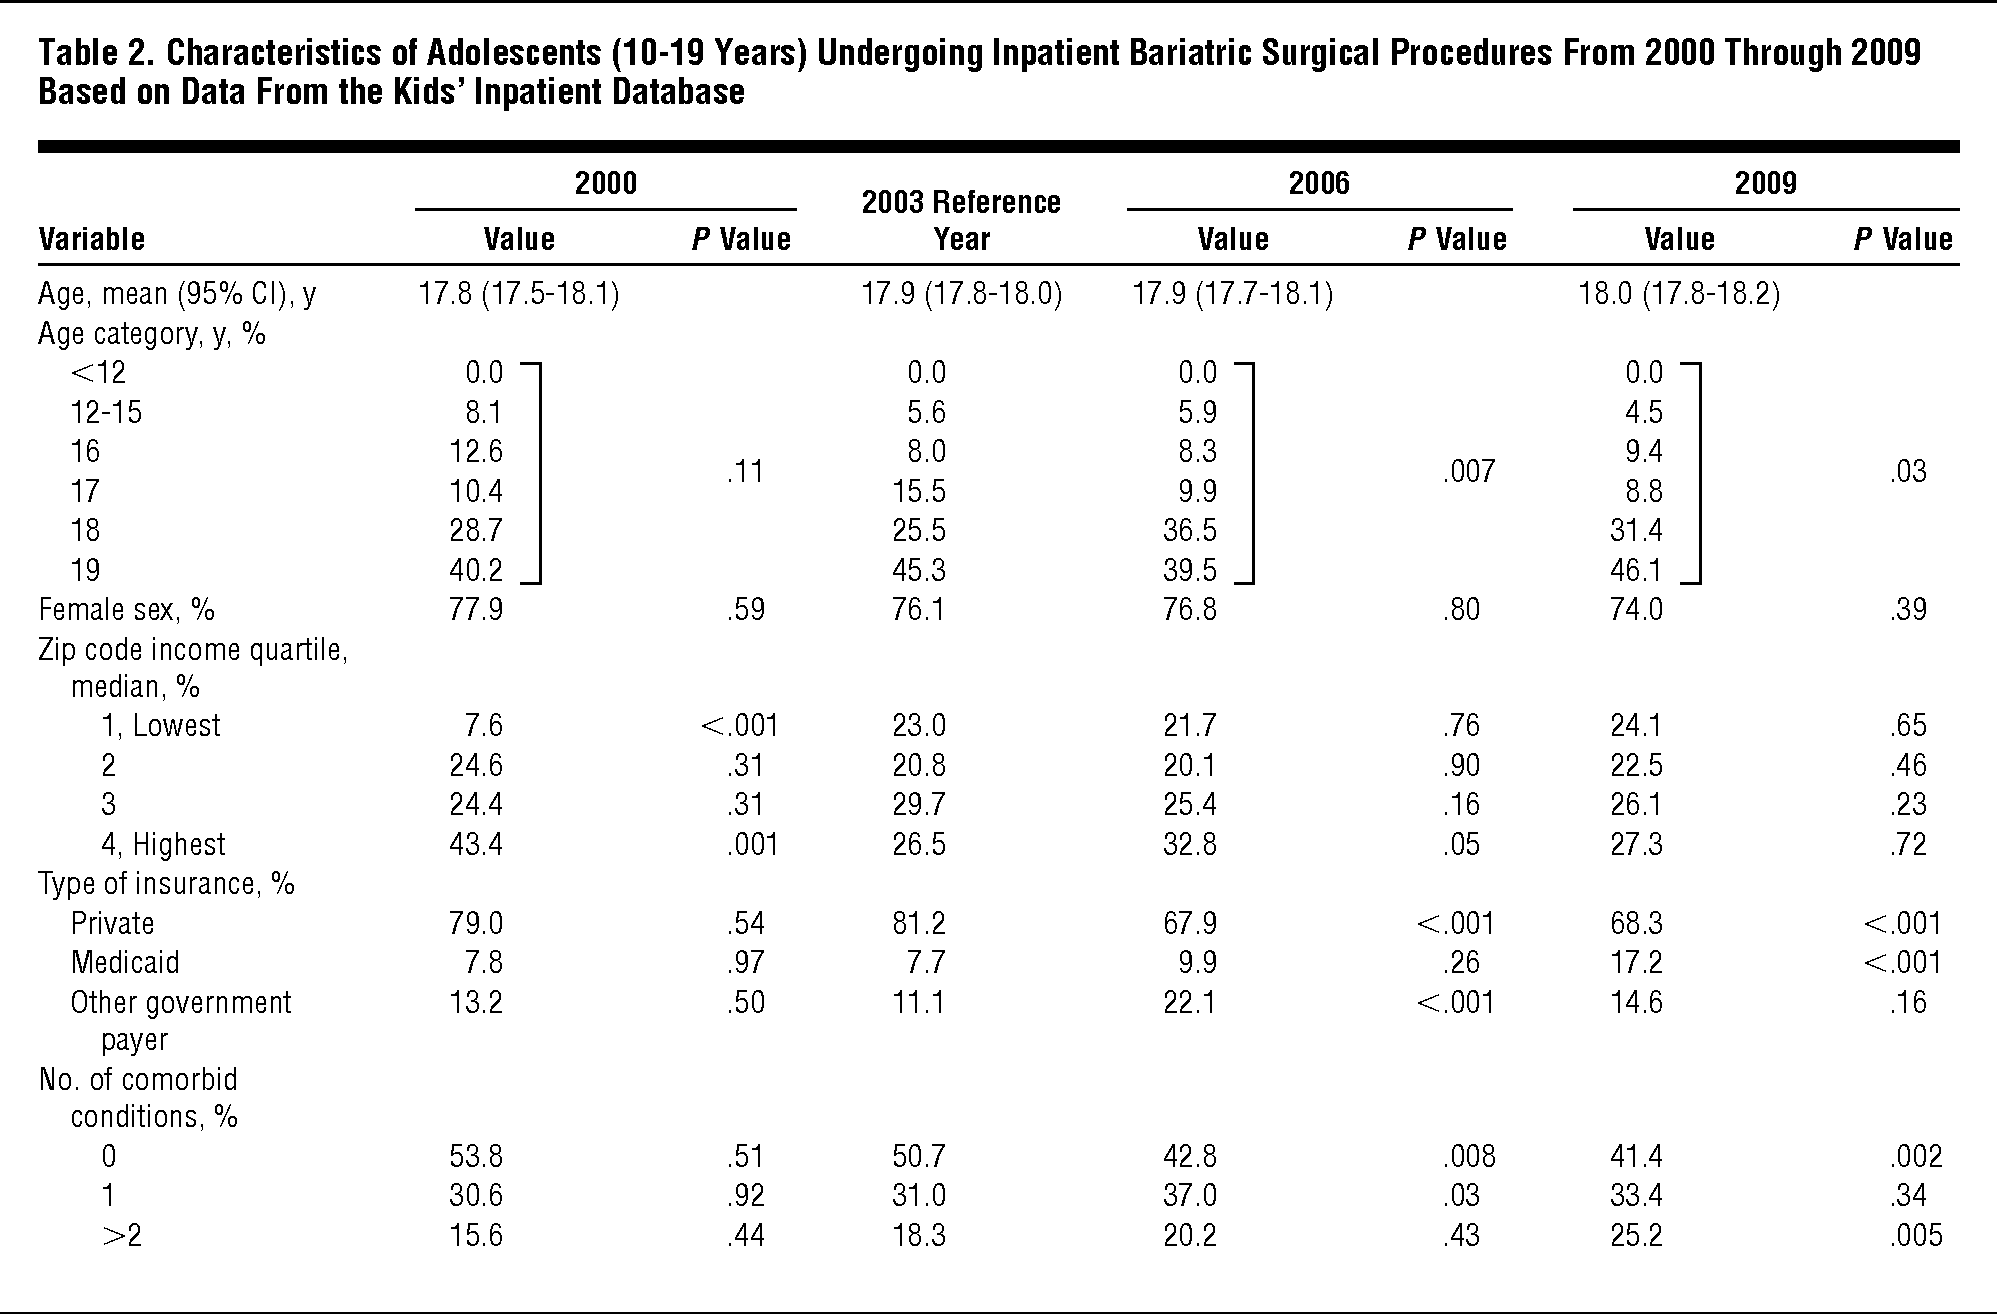 Recent National Trends in the Use of Adolescent Inpatient